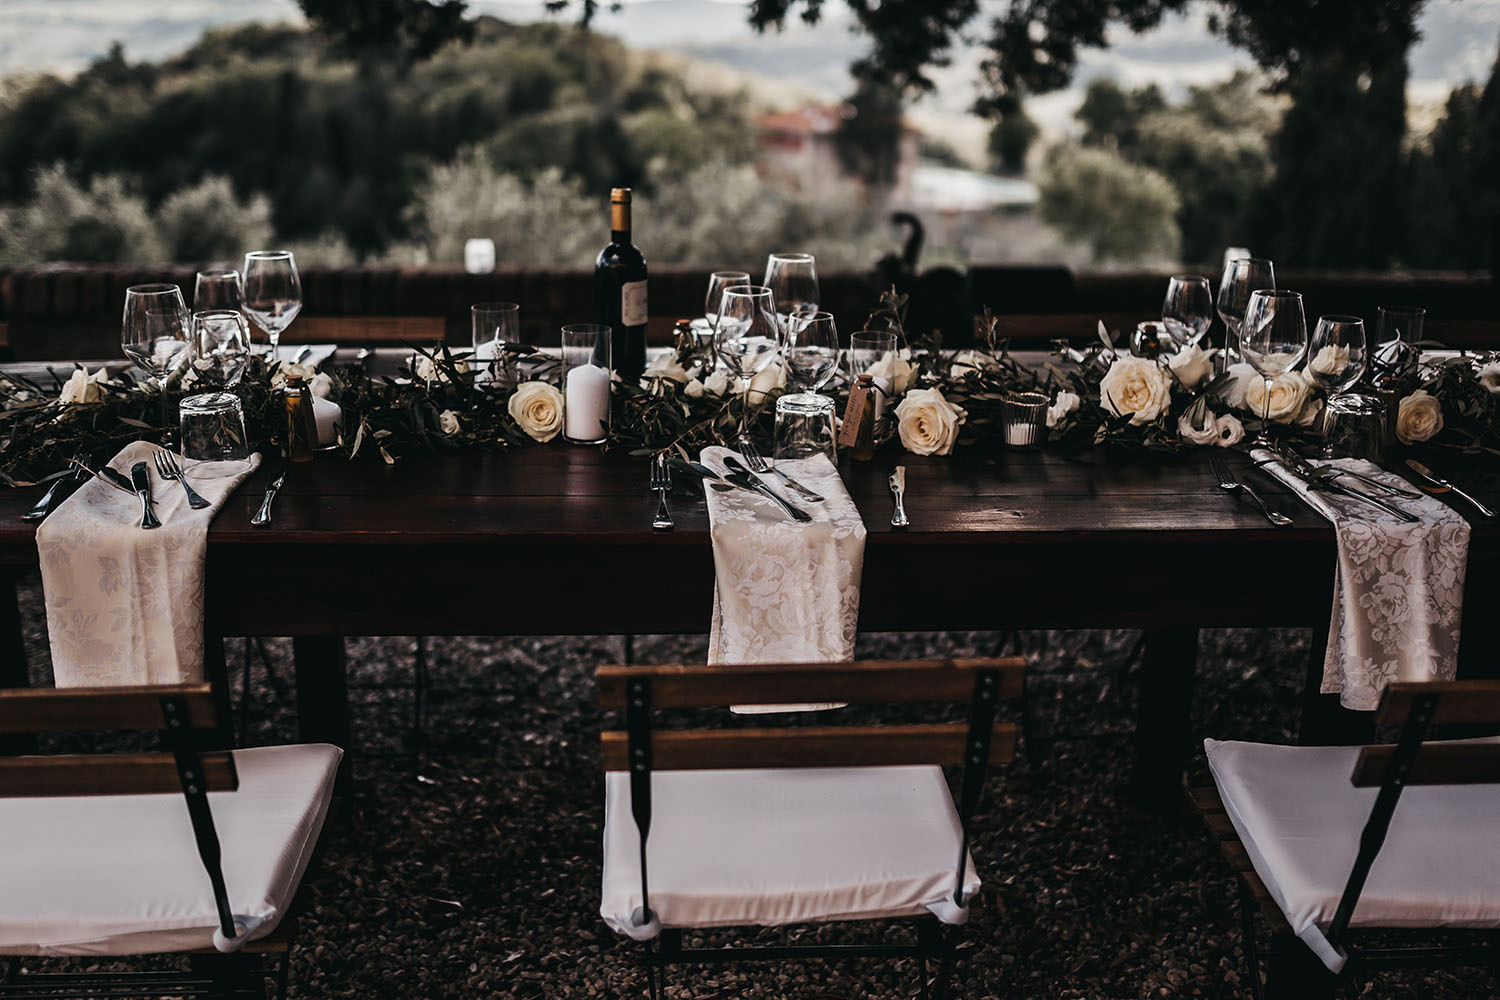 The table decor was done with white blooms, greenery and candles and the textiles were printed